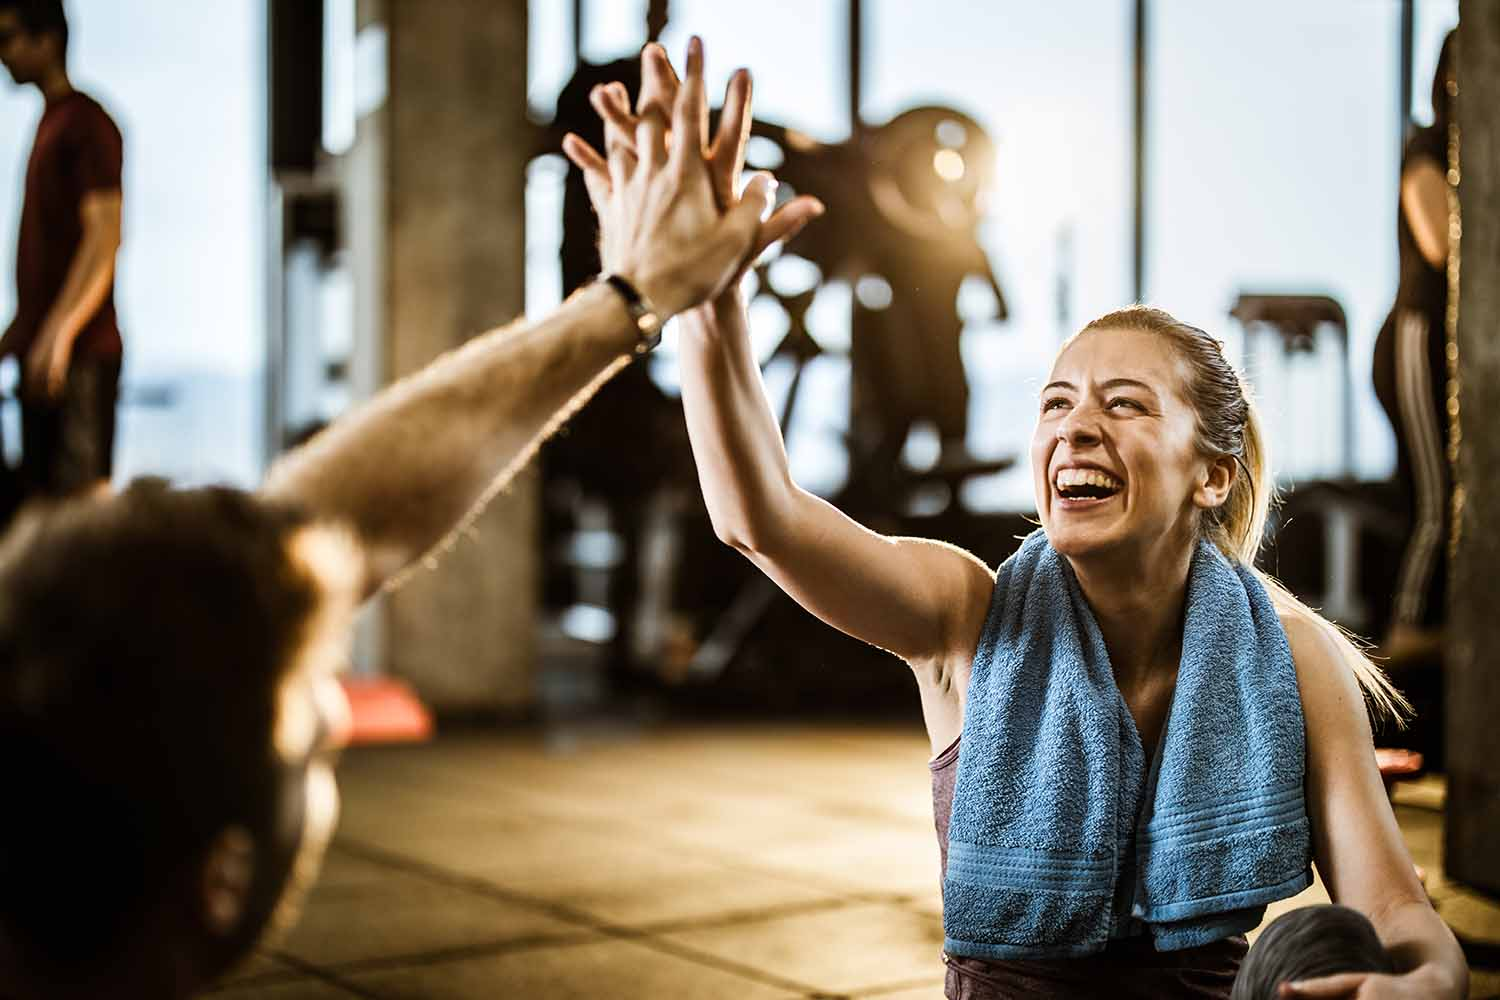 Woman giving a high five at the gym